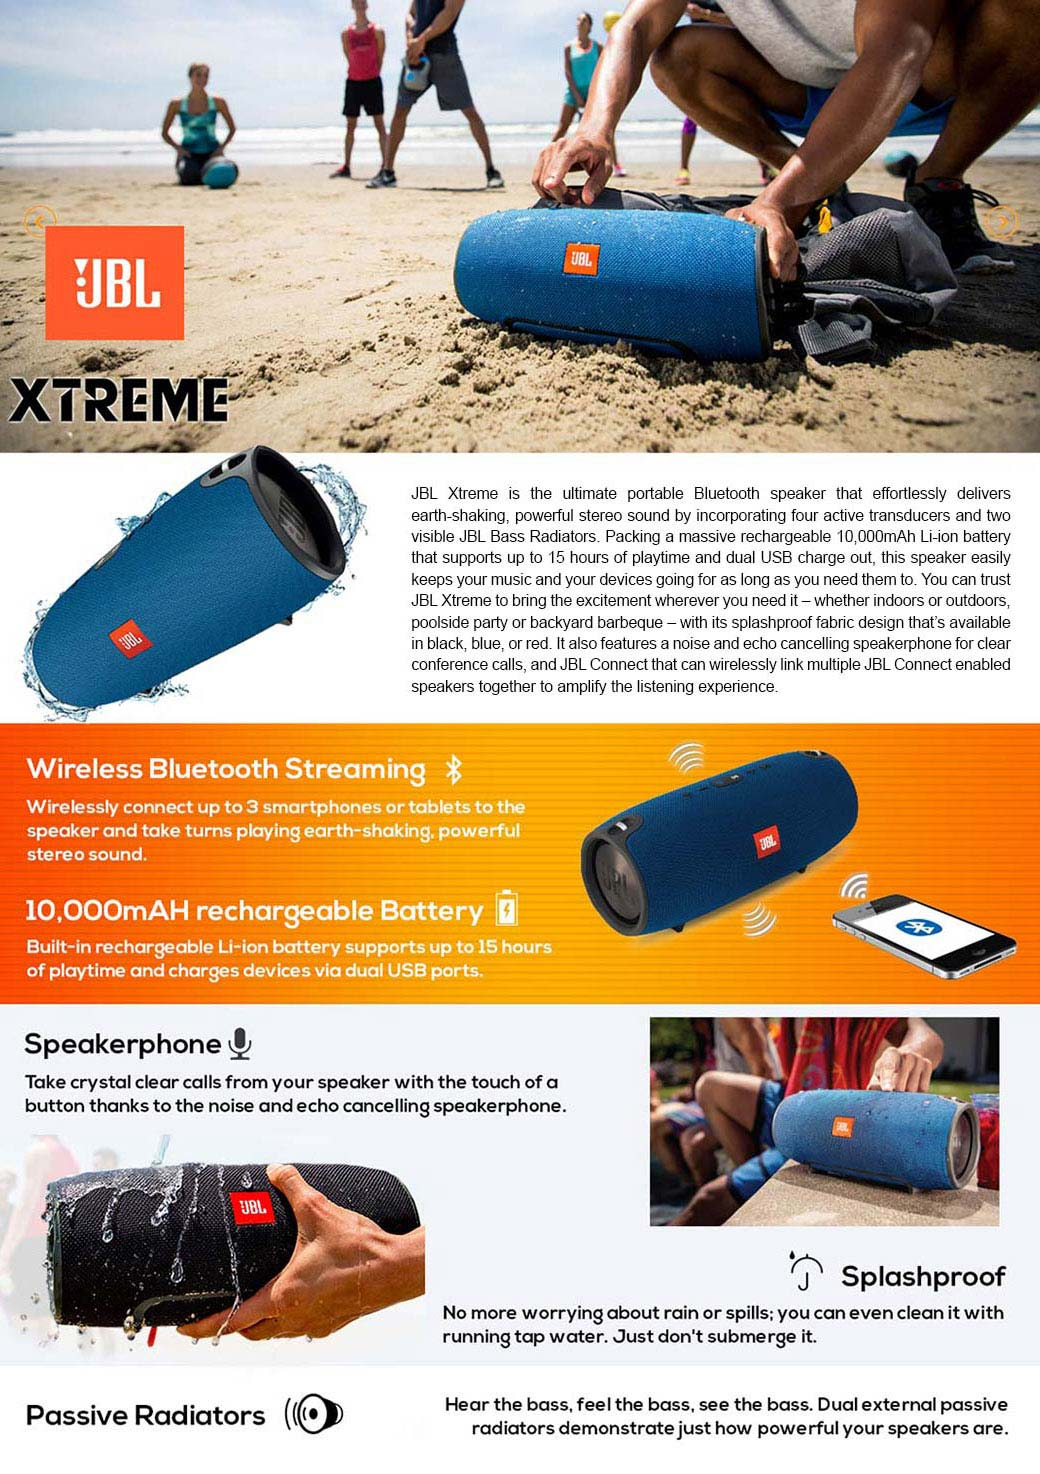 Jbl Xtreme Splashproof Portable Speaker With Ultra Powerful Black 126k Subscribers Subscribe Introducing The